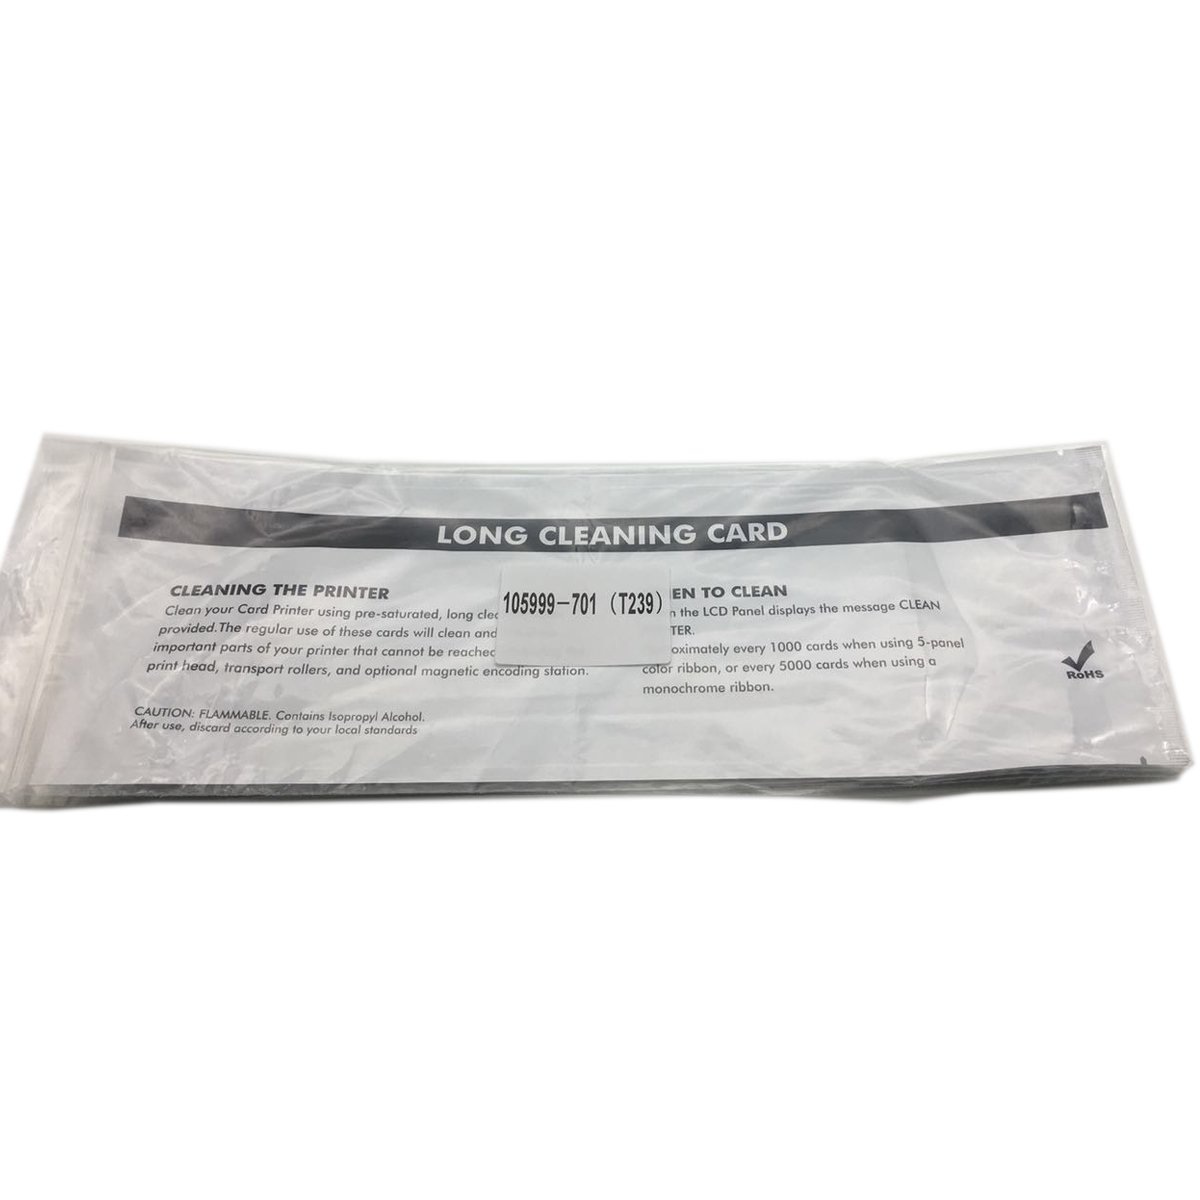 Cleaning Kits CM-105999-701 for ZXP 7 card Printer, Pack of 12 print path cleaning cards and 12 feeder cleaning cards